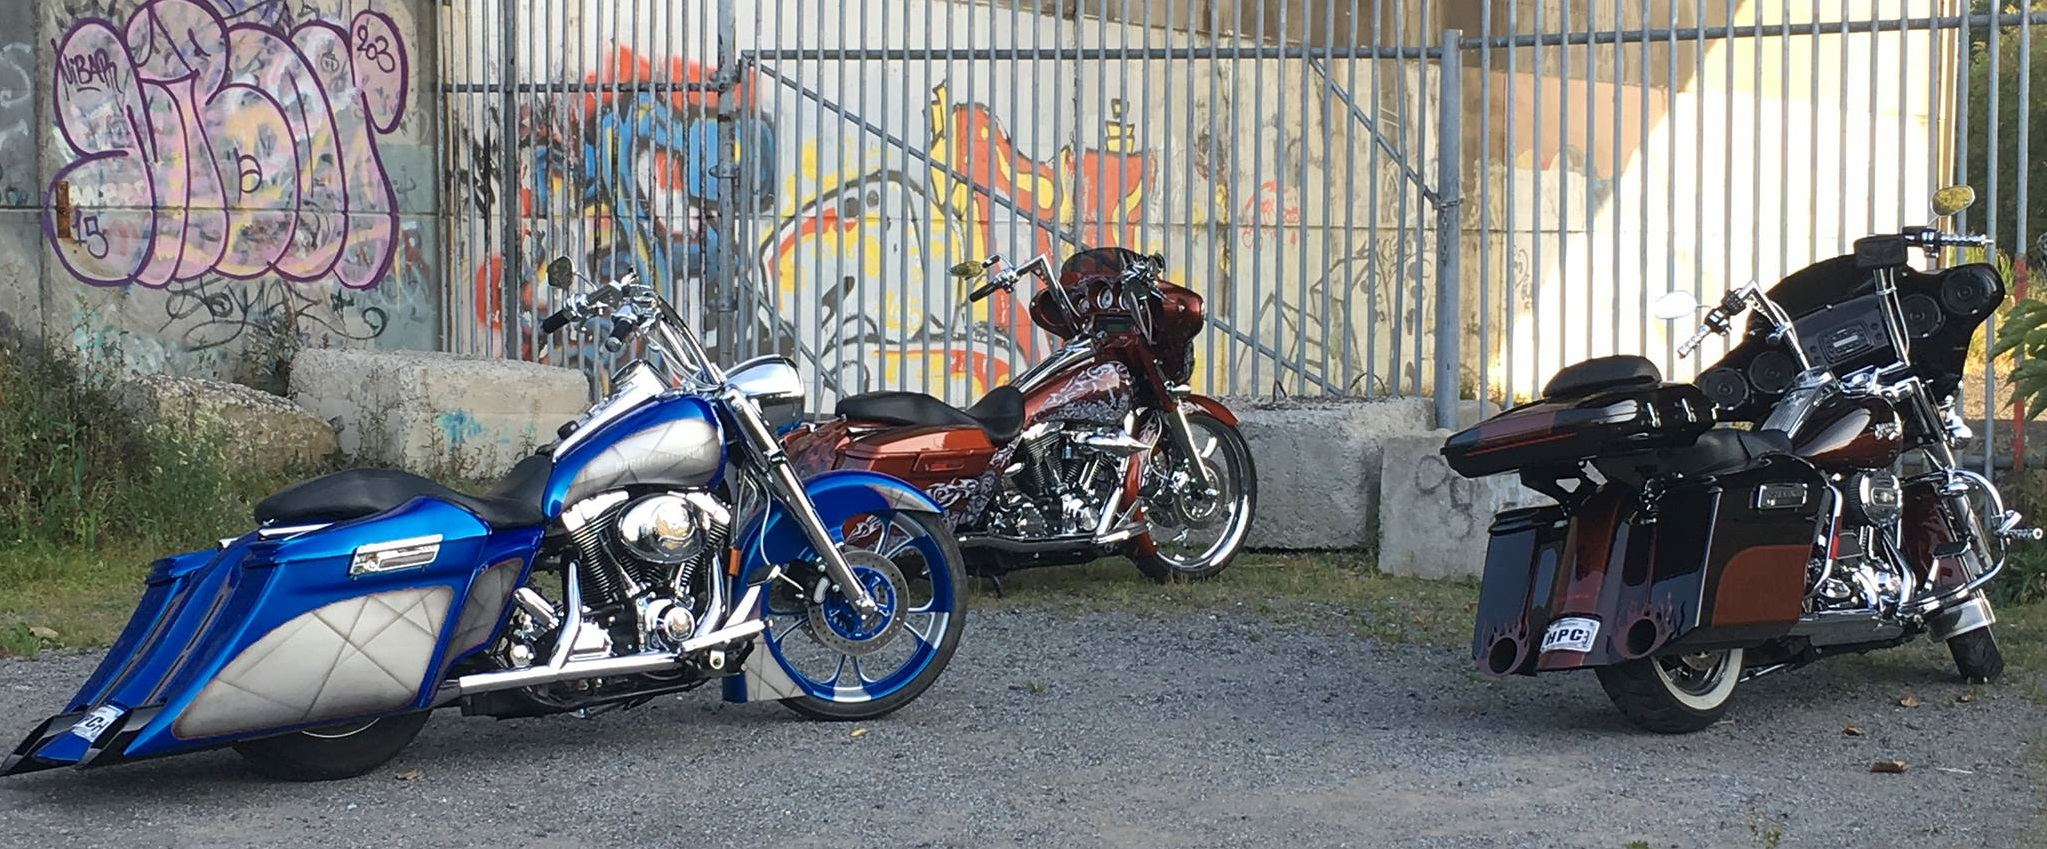 BAGGER, HARLEY, INDIAN, HARD BAG, FIBERGLASS BAG